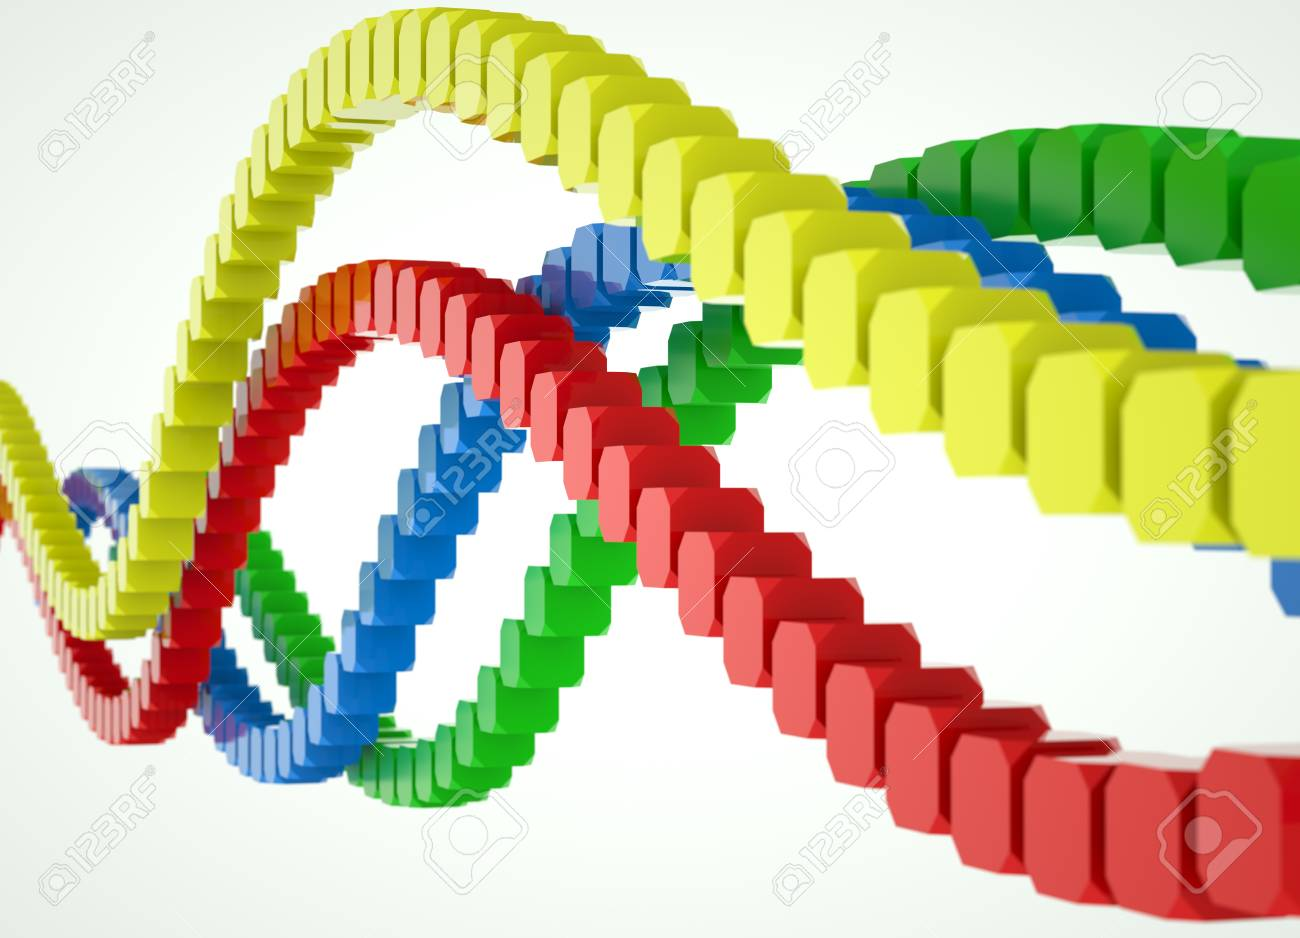 Colorful waves of blocks Stock Photo - 18844811